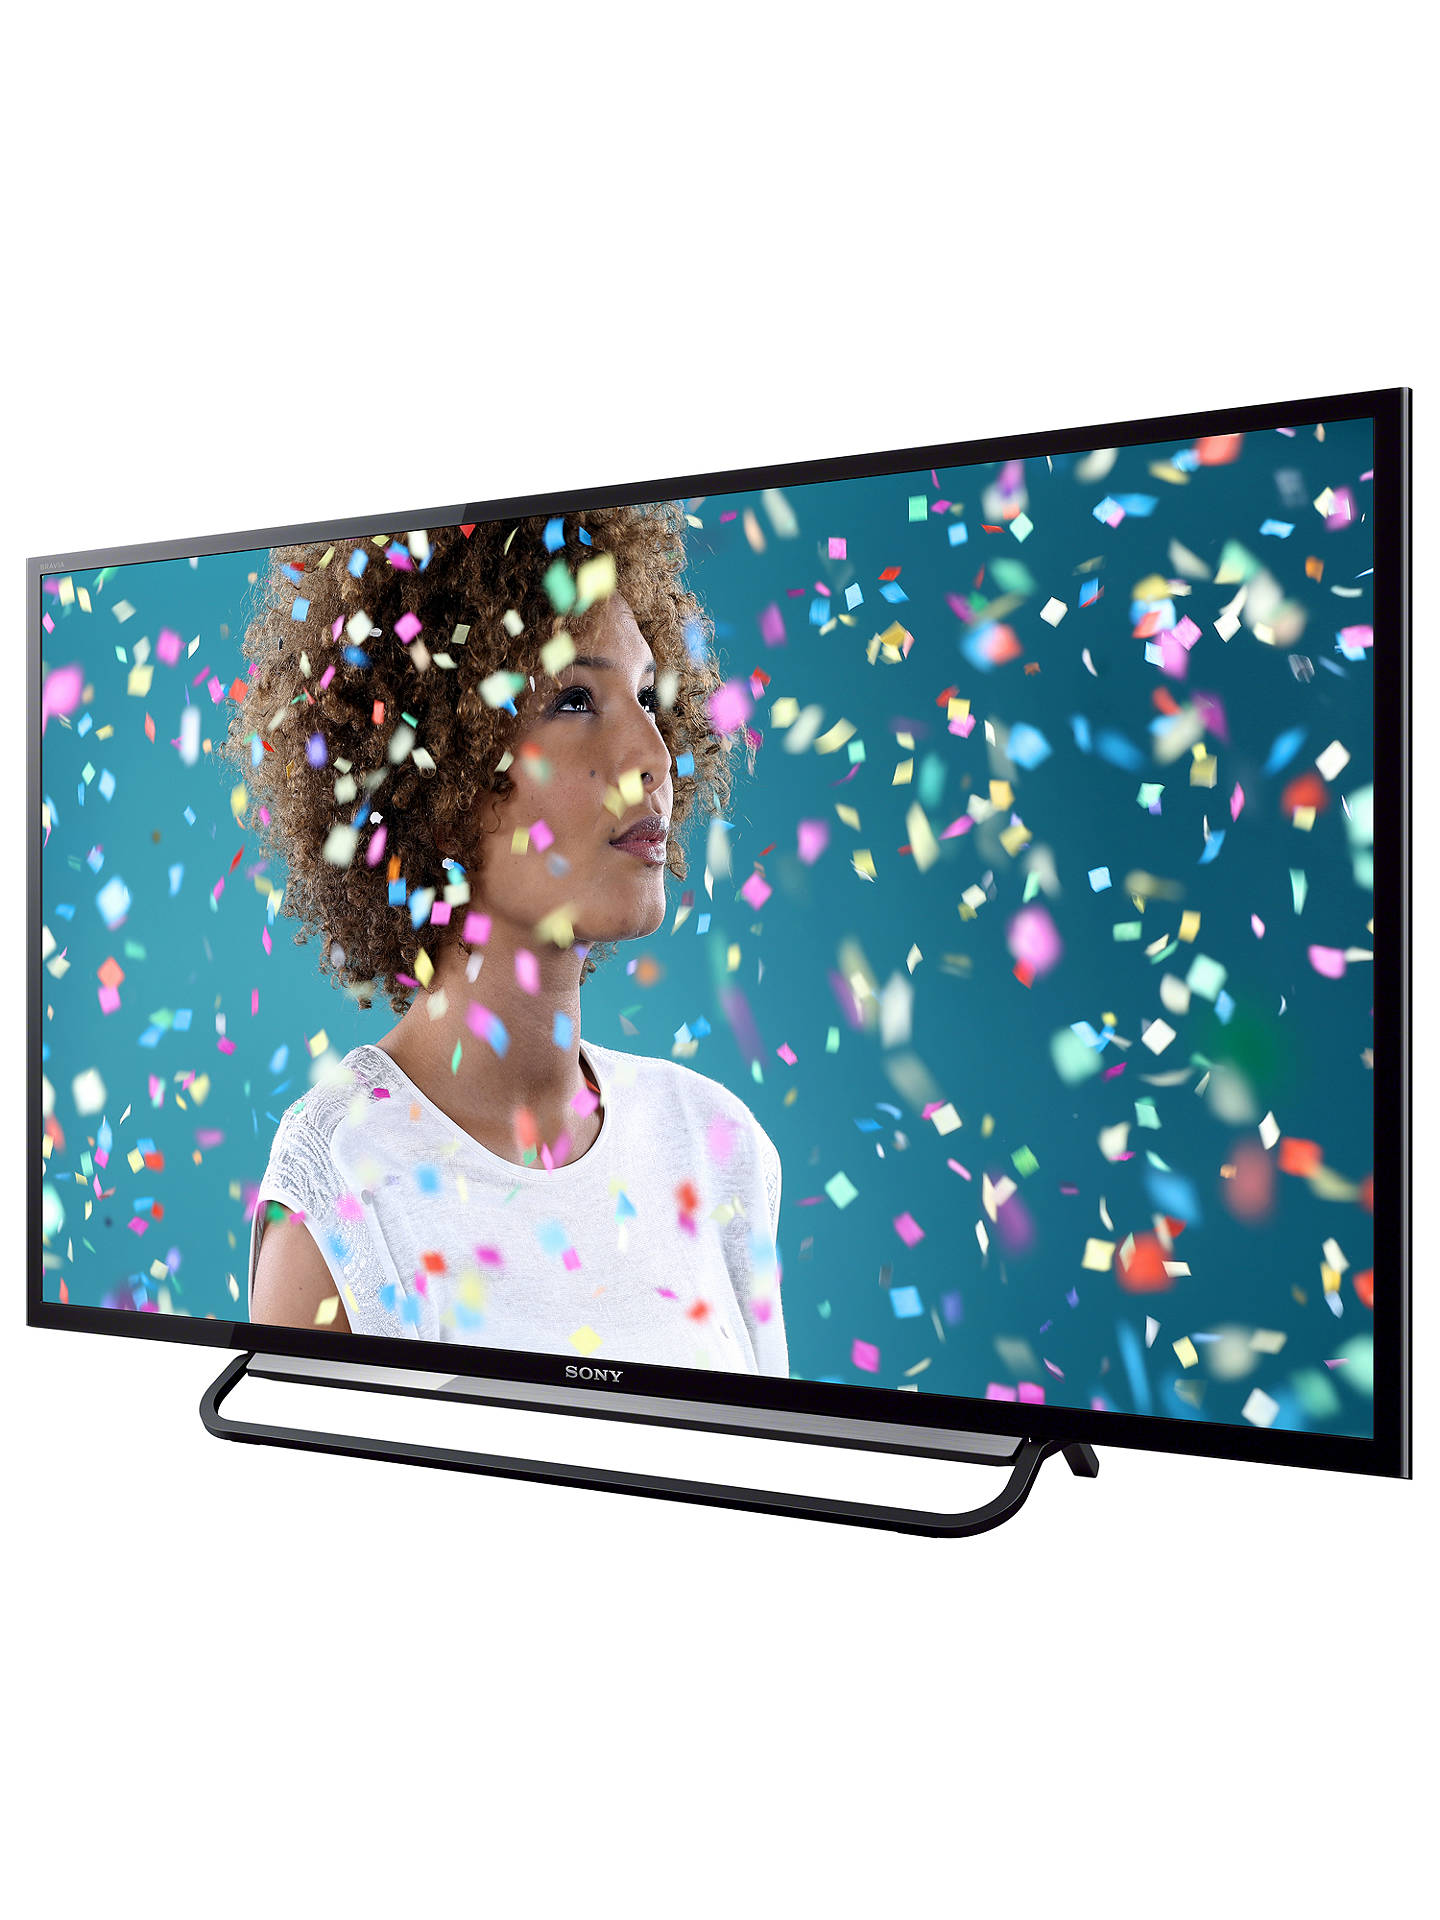 Sony Bravia Kdl40r483 Led Hd 1080p Tv 40 With Freeview At John Sharp Ib 16w Hair Dryer Plasmacluster Buysony Online Johnlewis